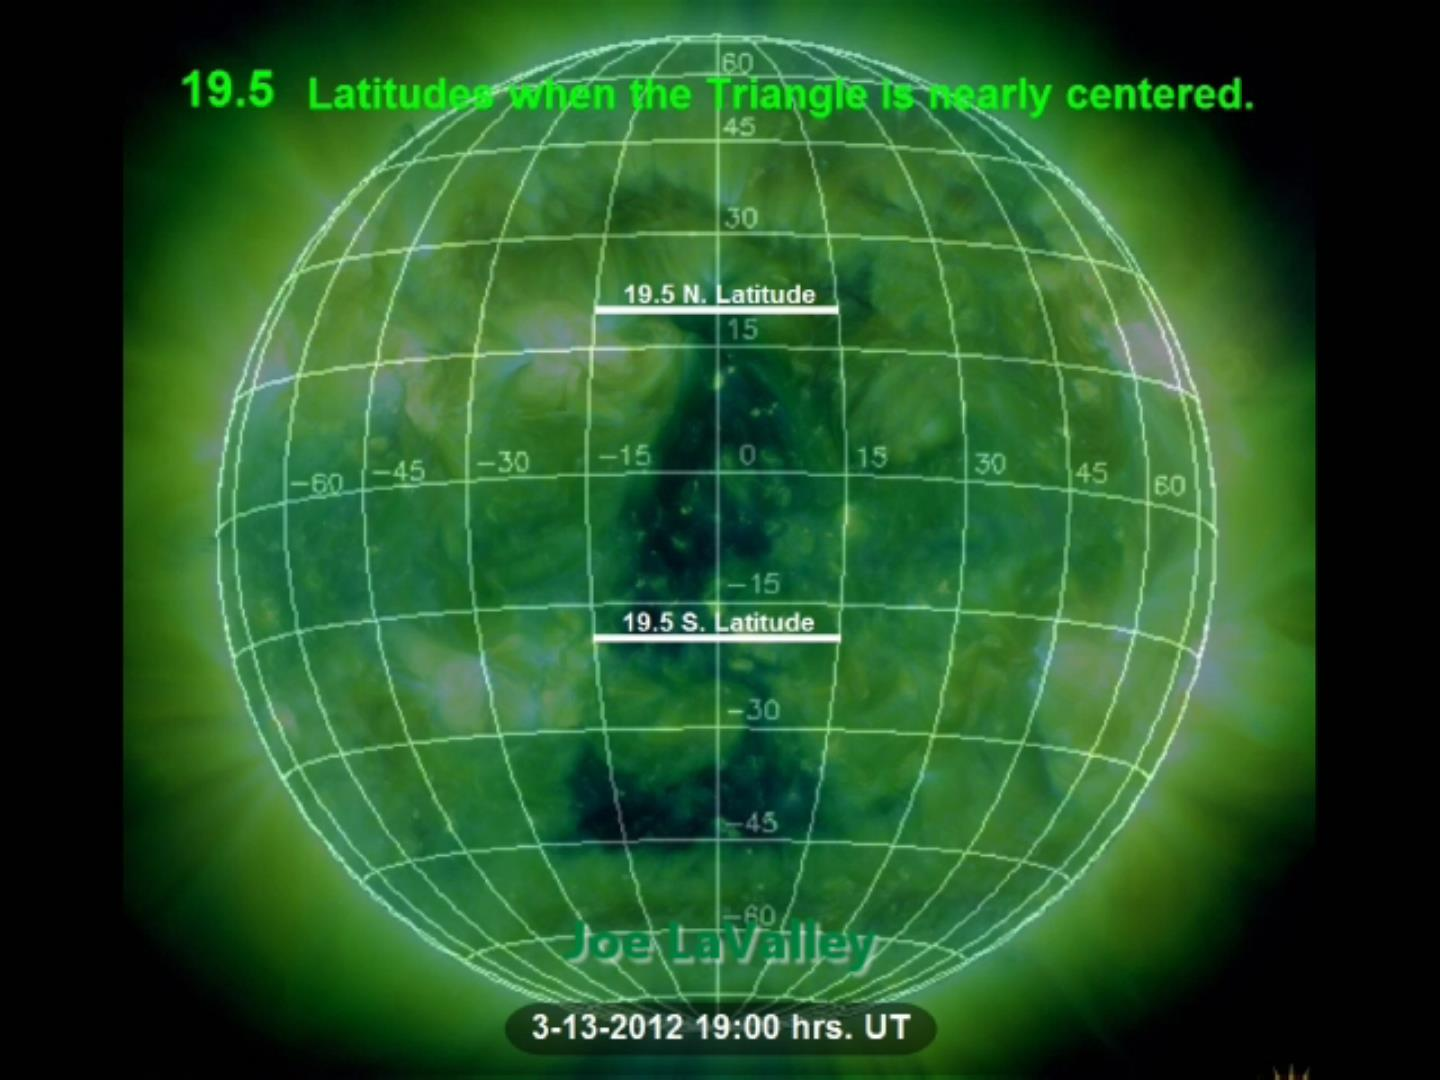 Lg. Triangle and the 19.5 Latitudes